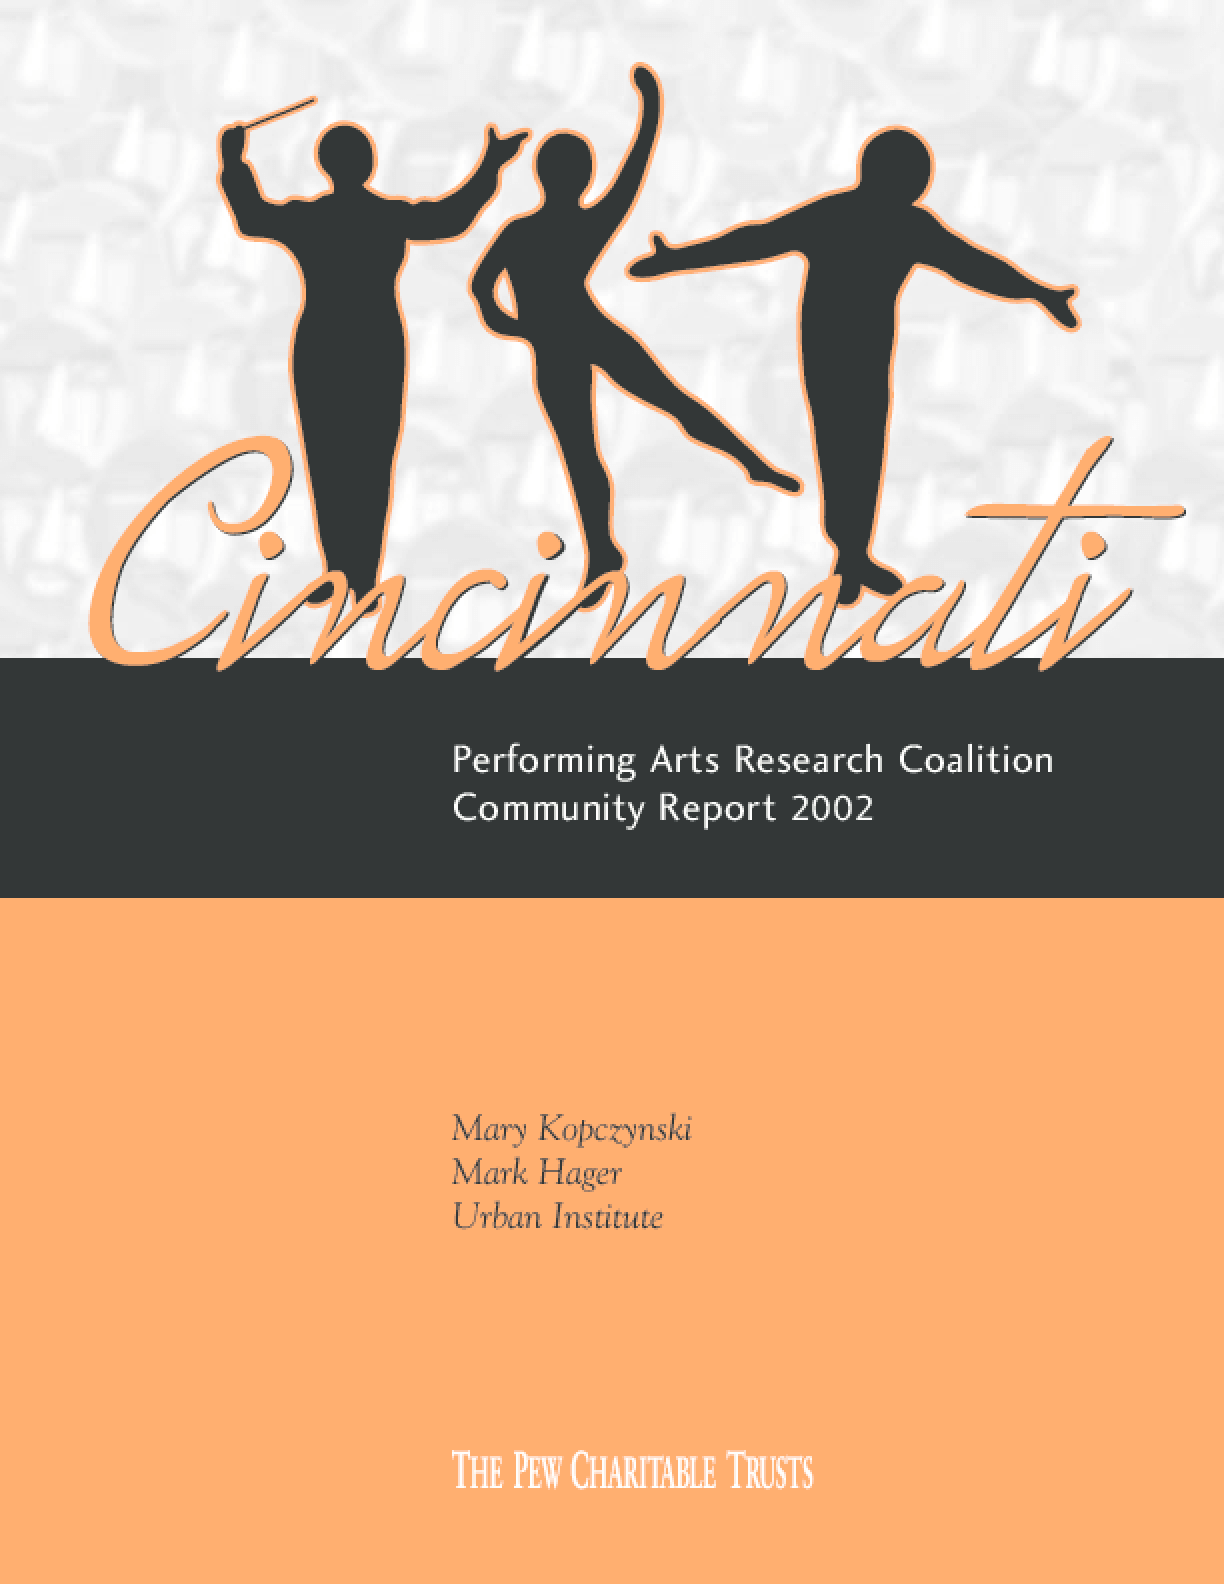 Cincinnati Performing Arts Research Coalition Community Report 2002